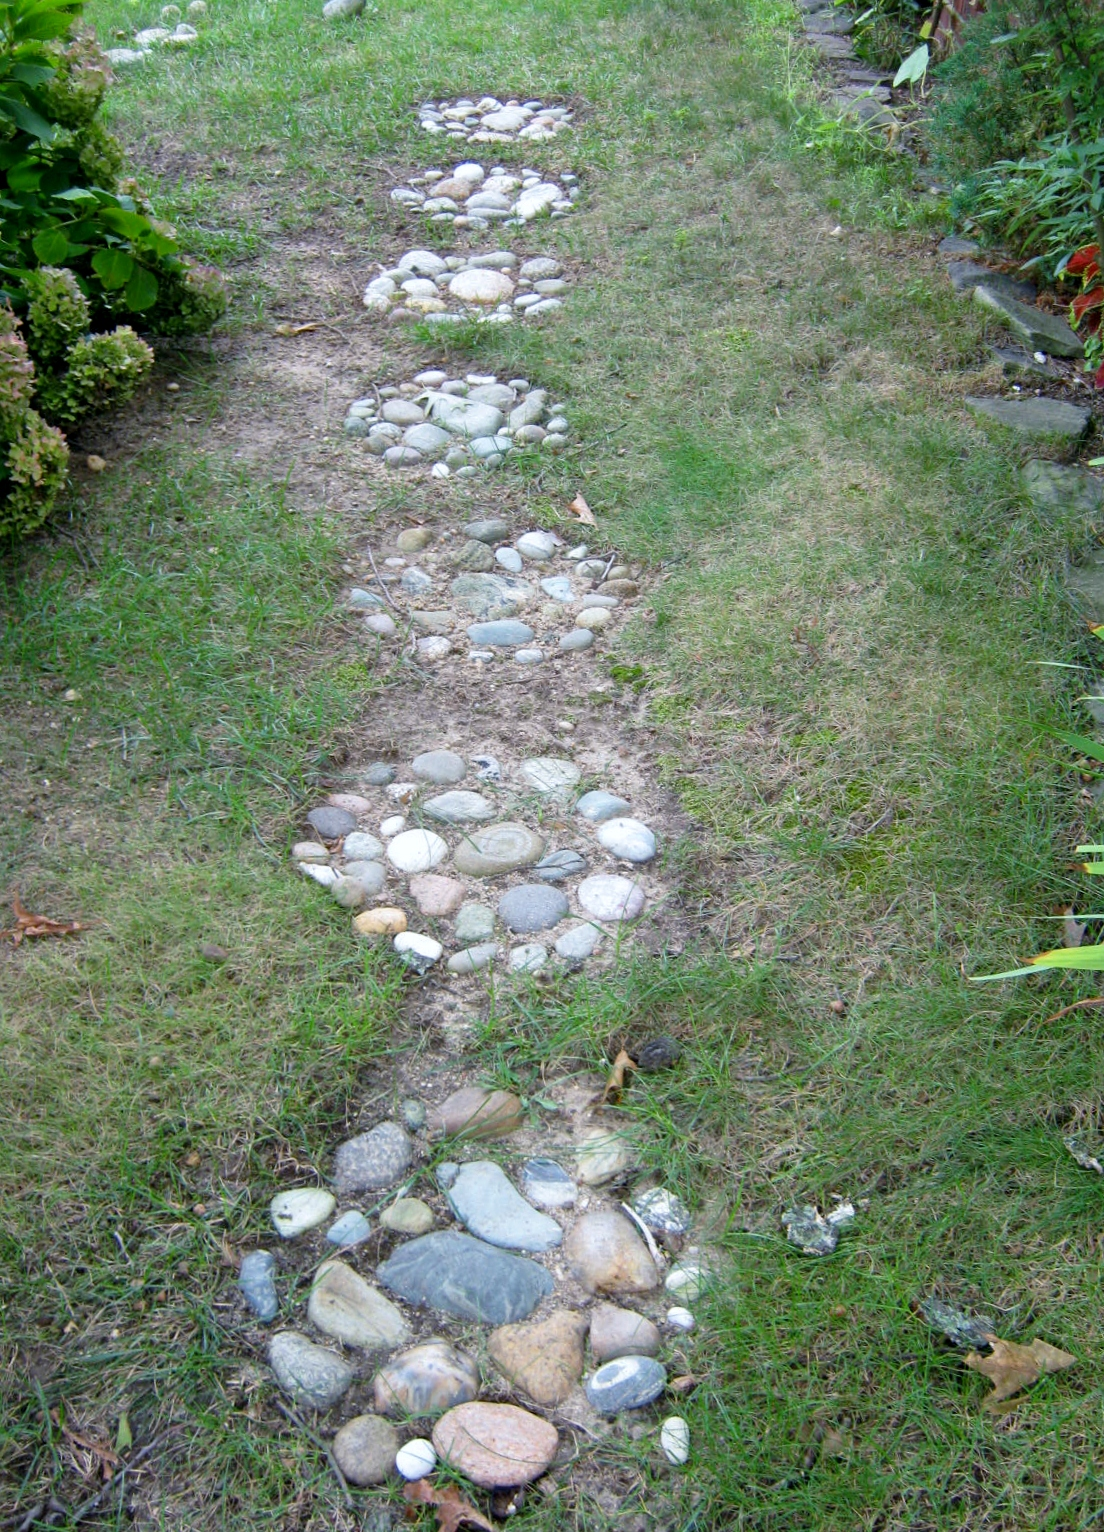 Projects stepping stone walkway minding my p 39 s with q - Stepping stones for walkways ...